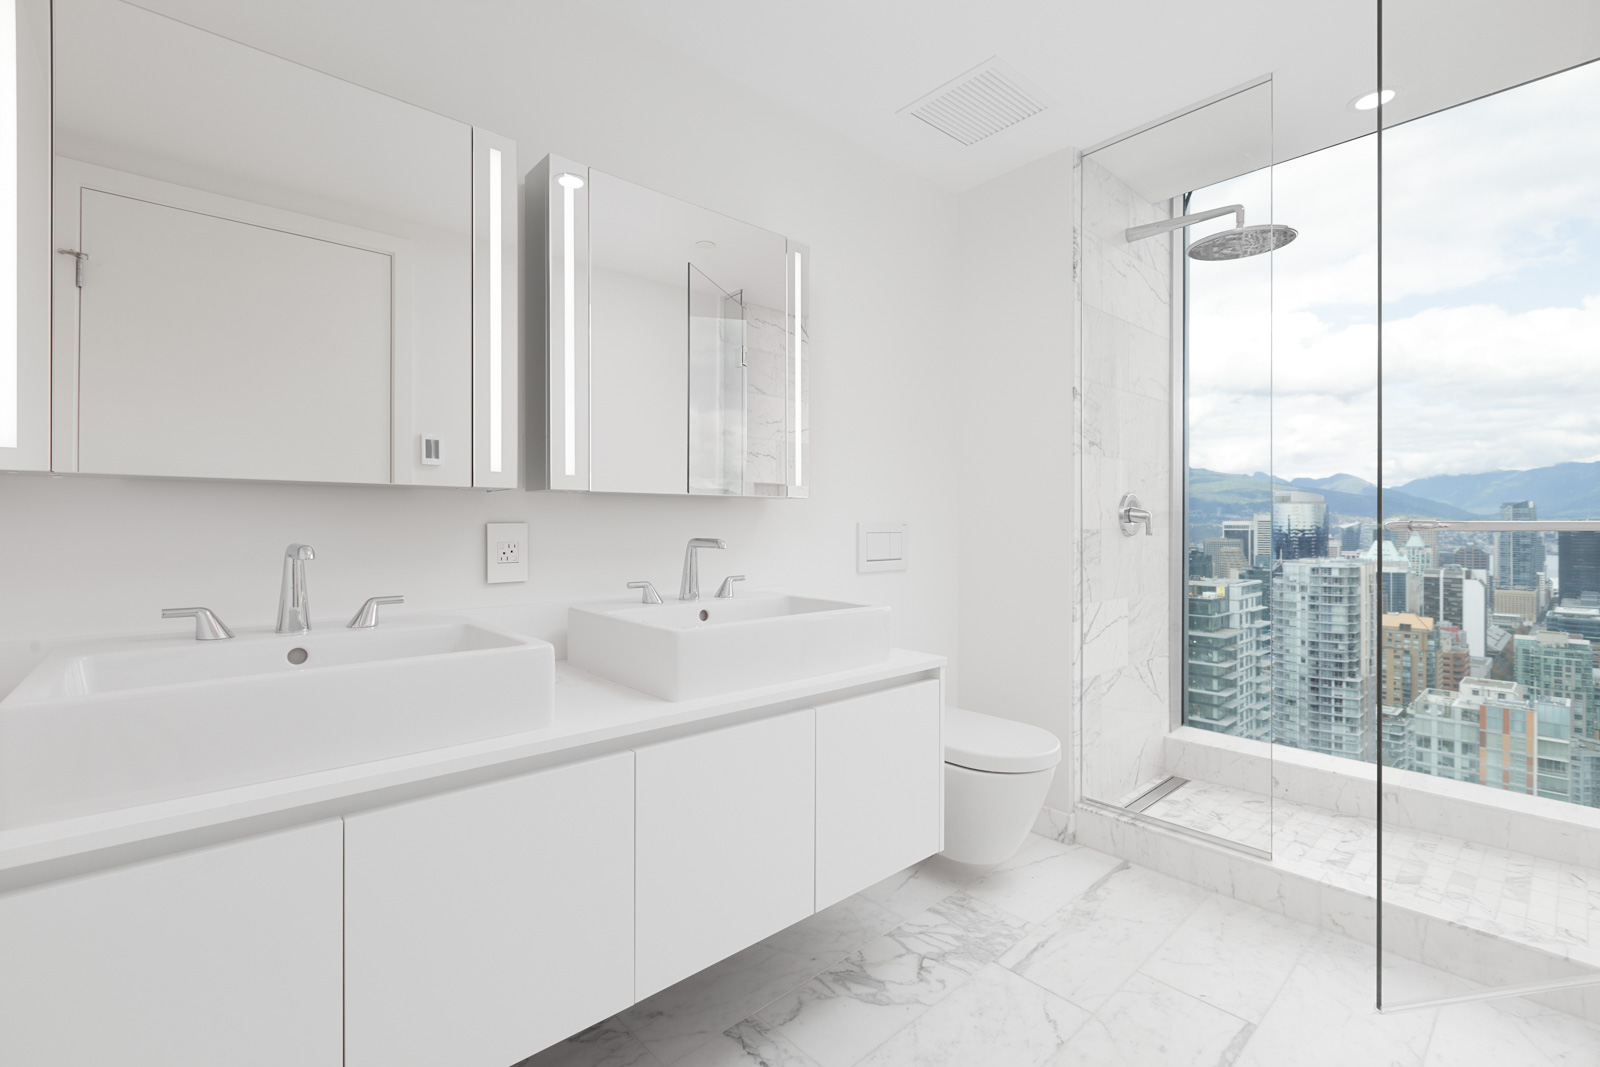 bathroom with view from upscale Yaletown condo